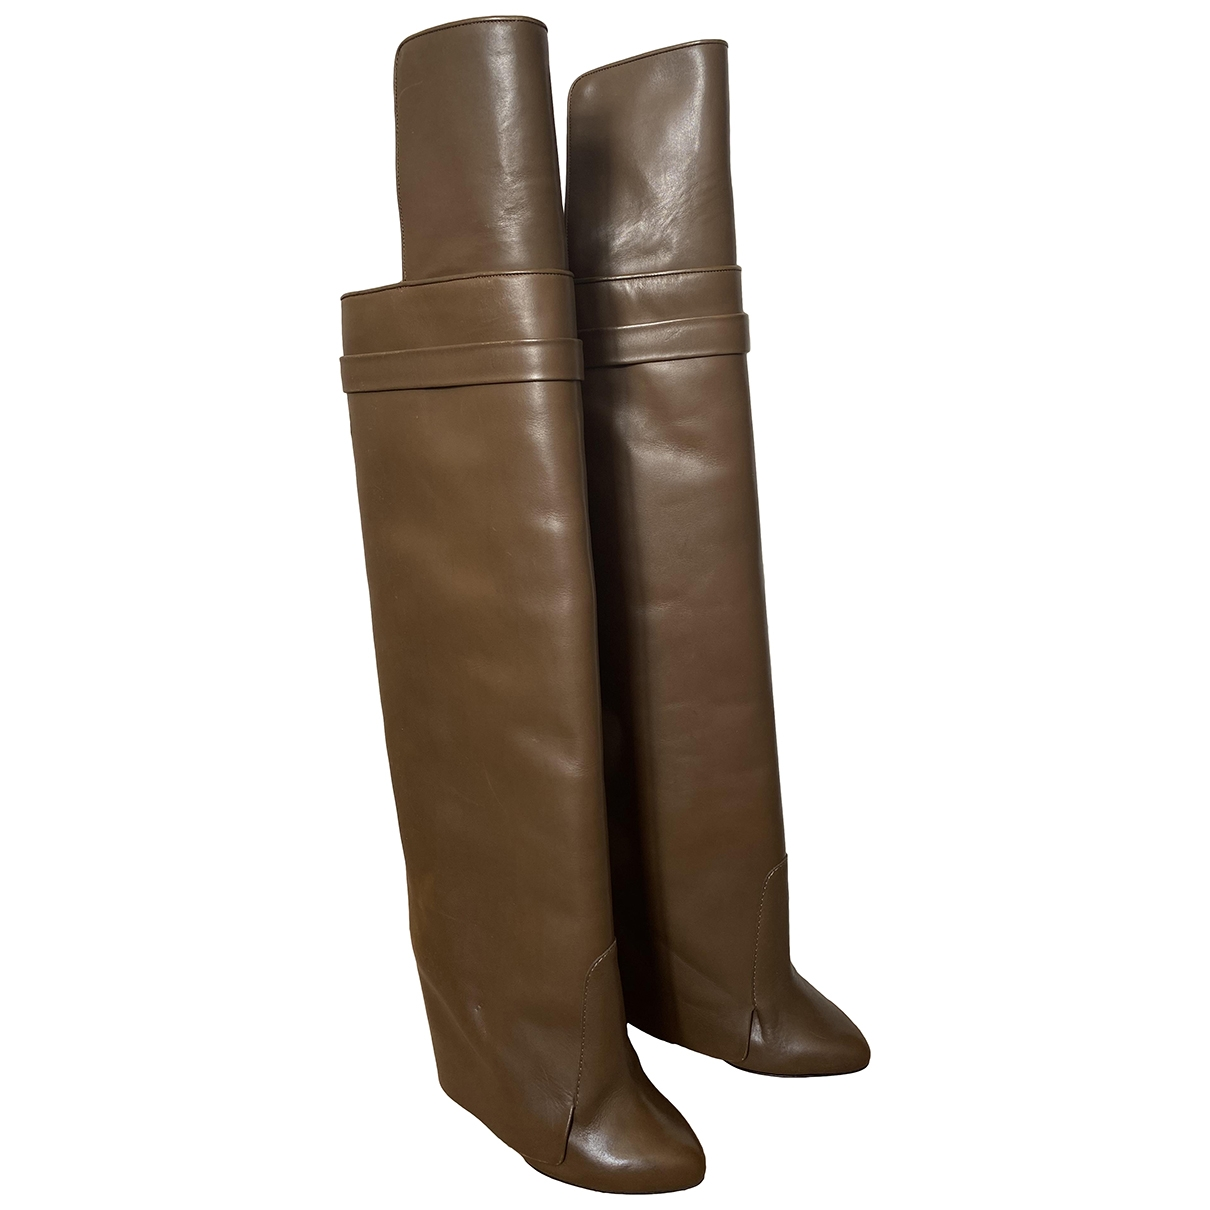 Givenchy Shark Brown Leather Boots for Women 37 EU